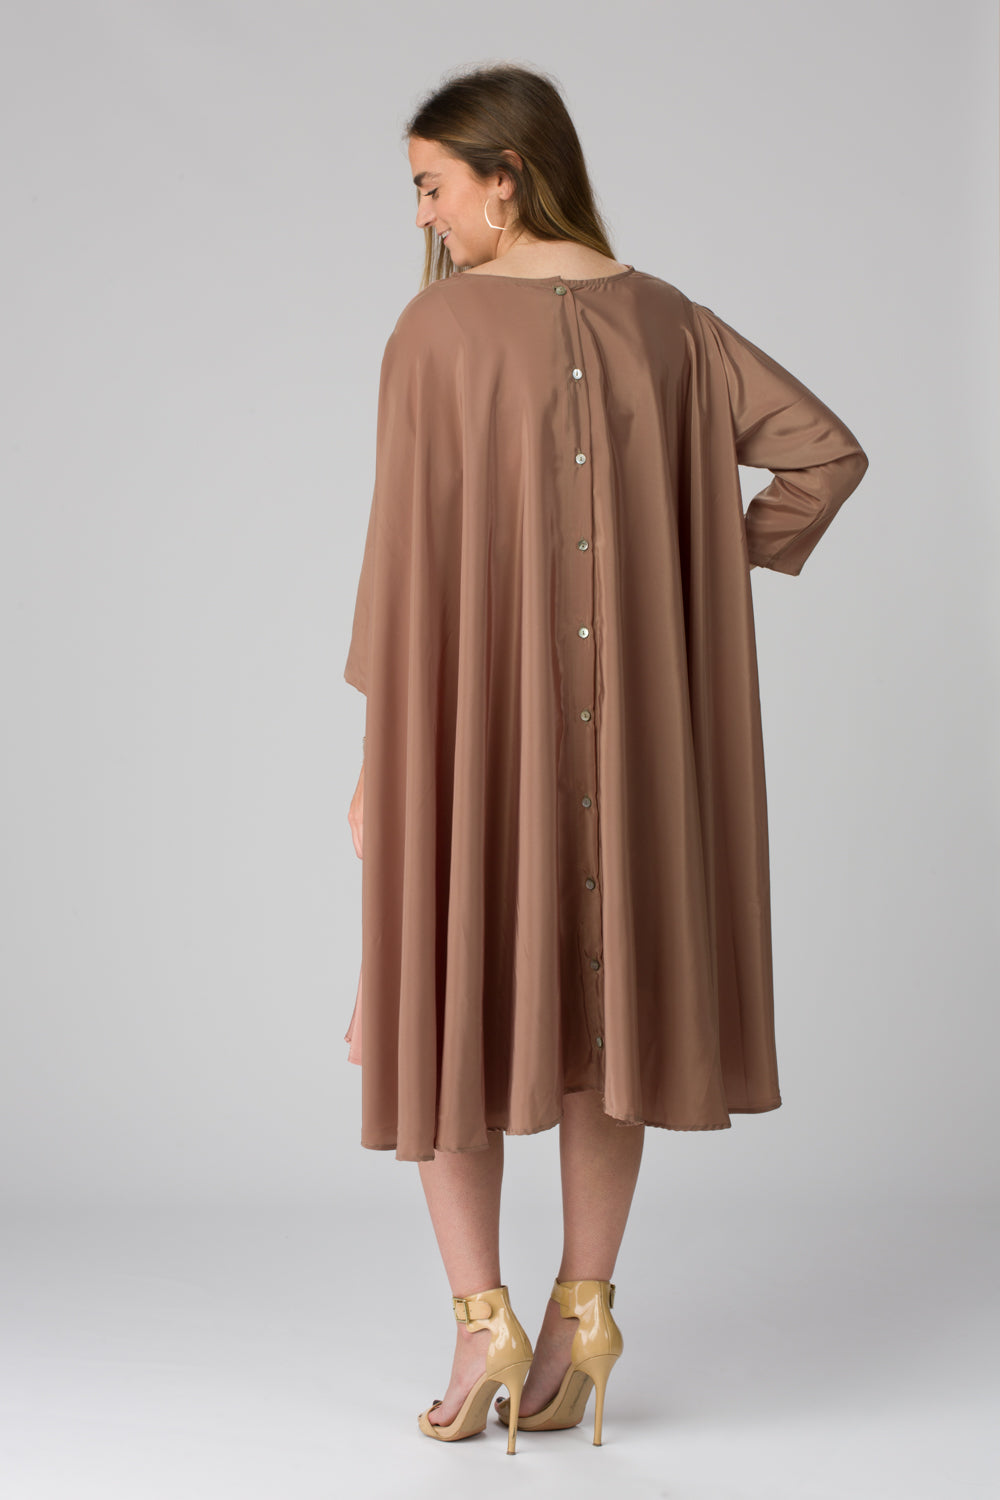 Shunka - Olive/Mauve Crepe - PROJECT 6, modest fashion